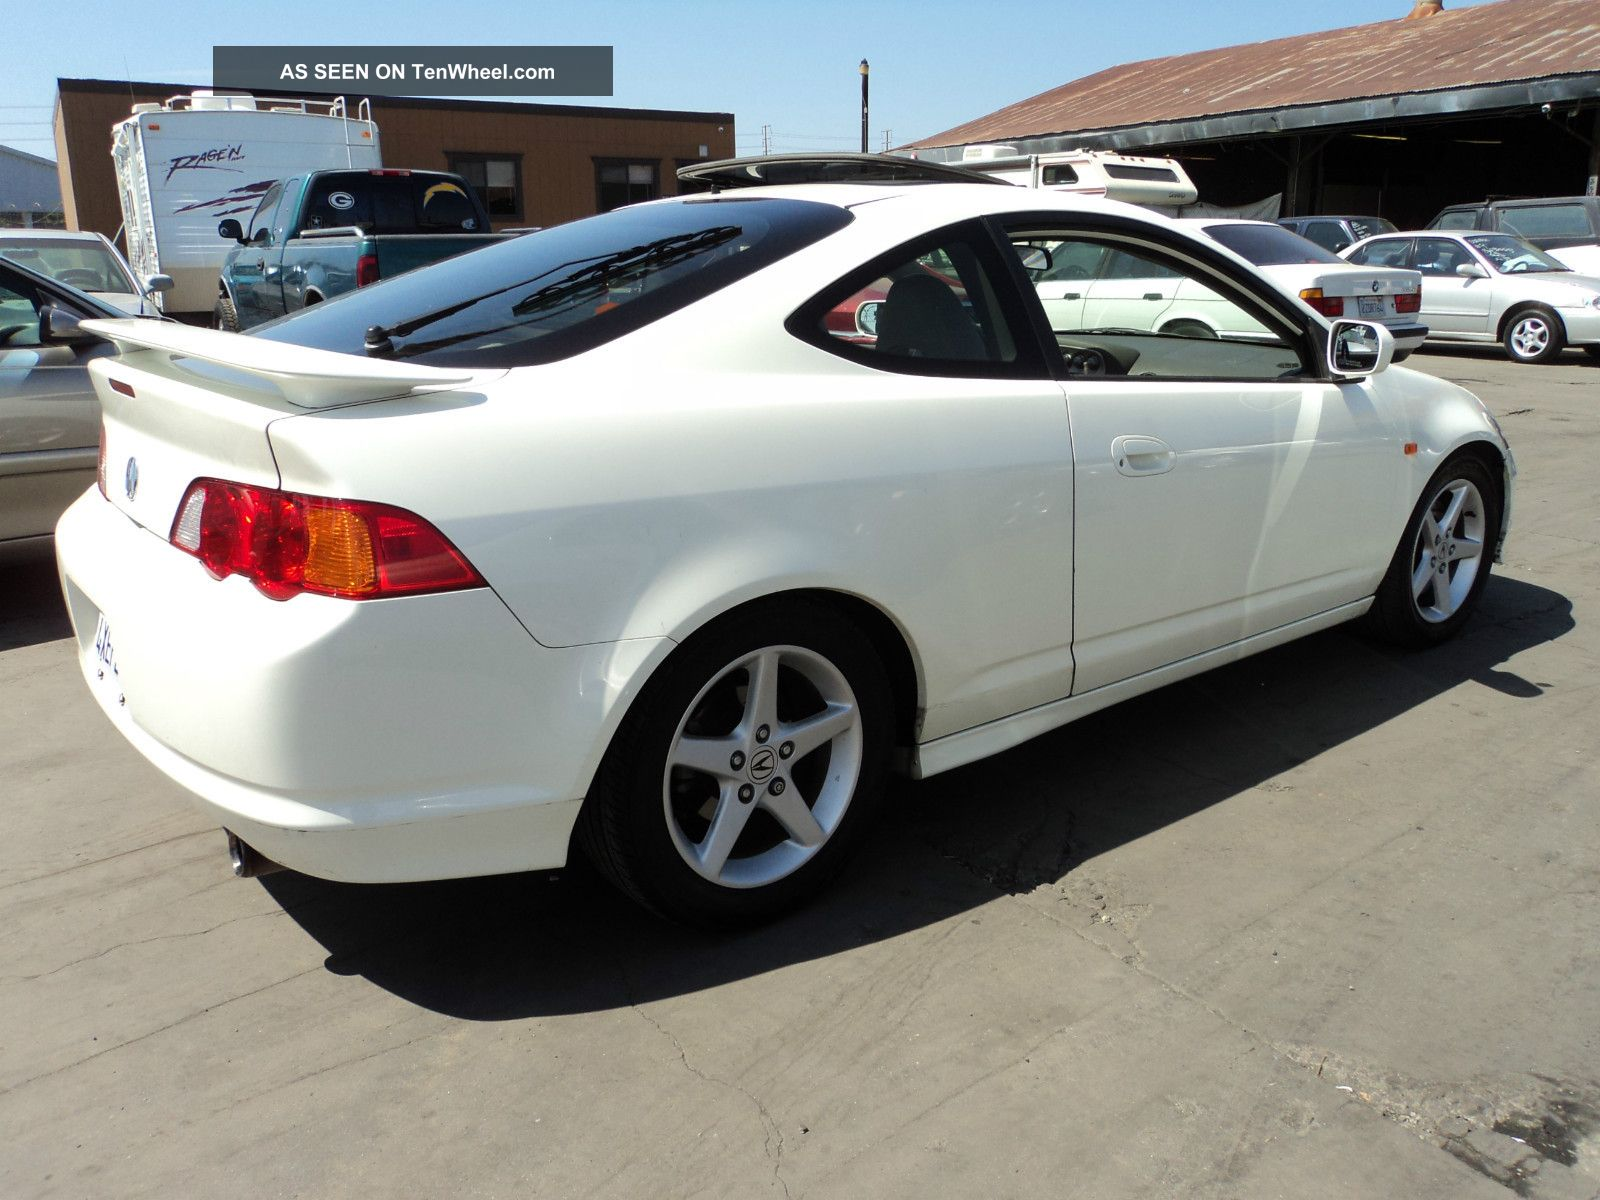 2002 Acura Rsx Pictures Information And Specs Diagram Wallpaper 9